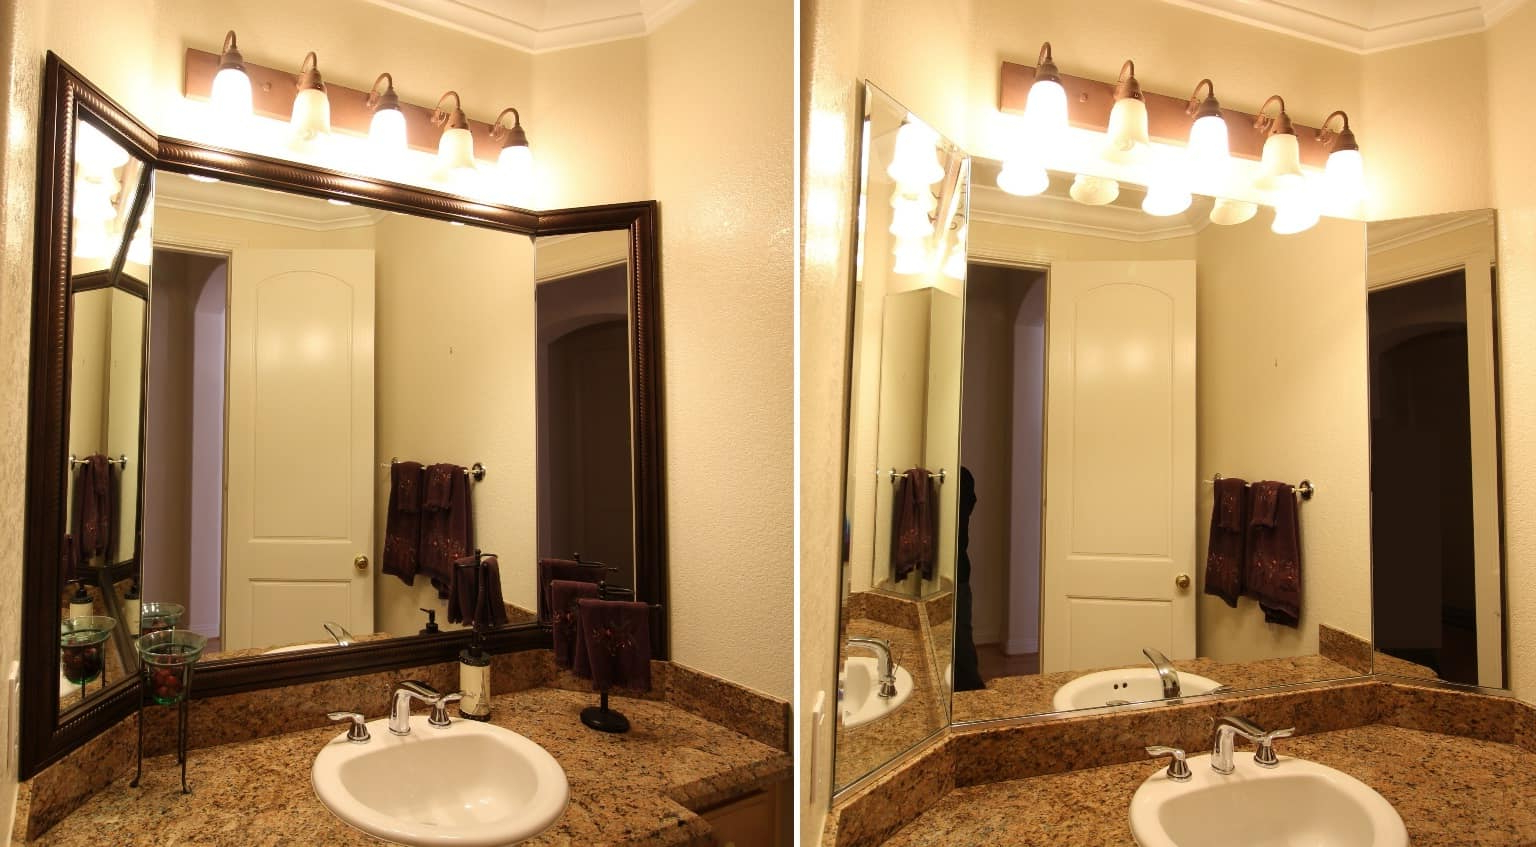 Tri Fold Bathroom Wall Mirrors With Newest Designs Daily Mirror Vanity And For Living Lighting Frame (View 14 of 20)